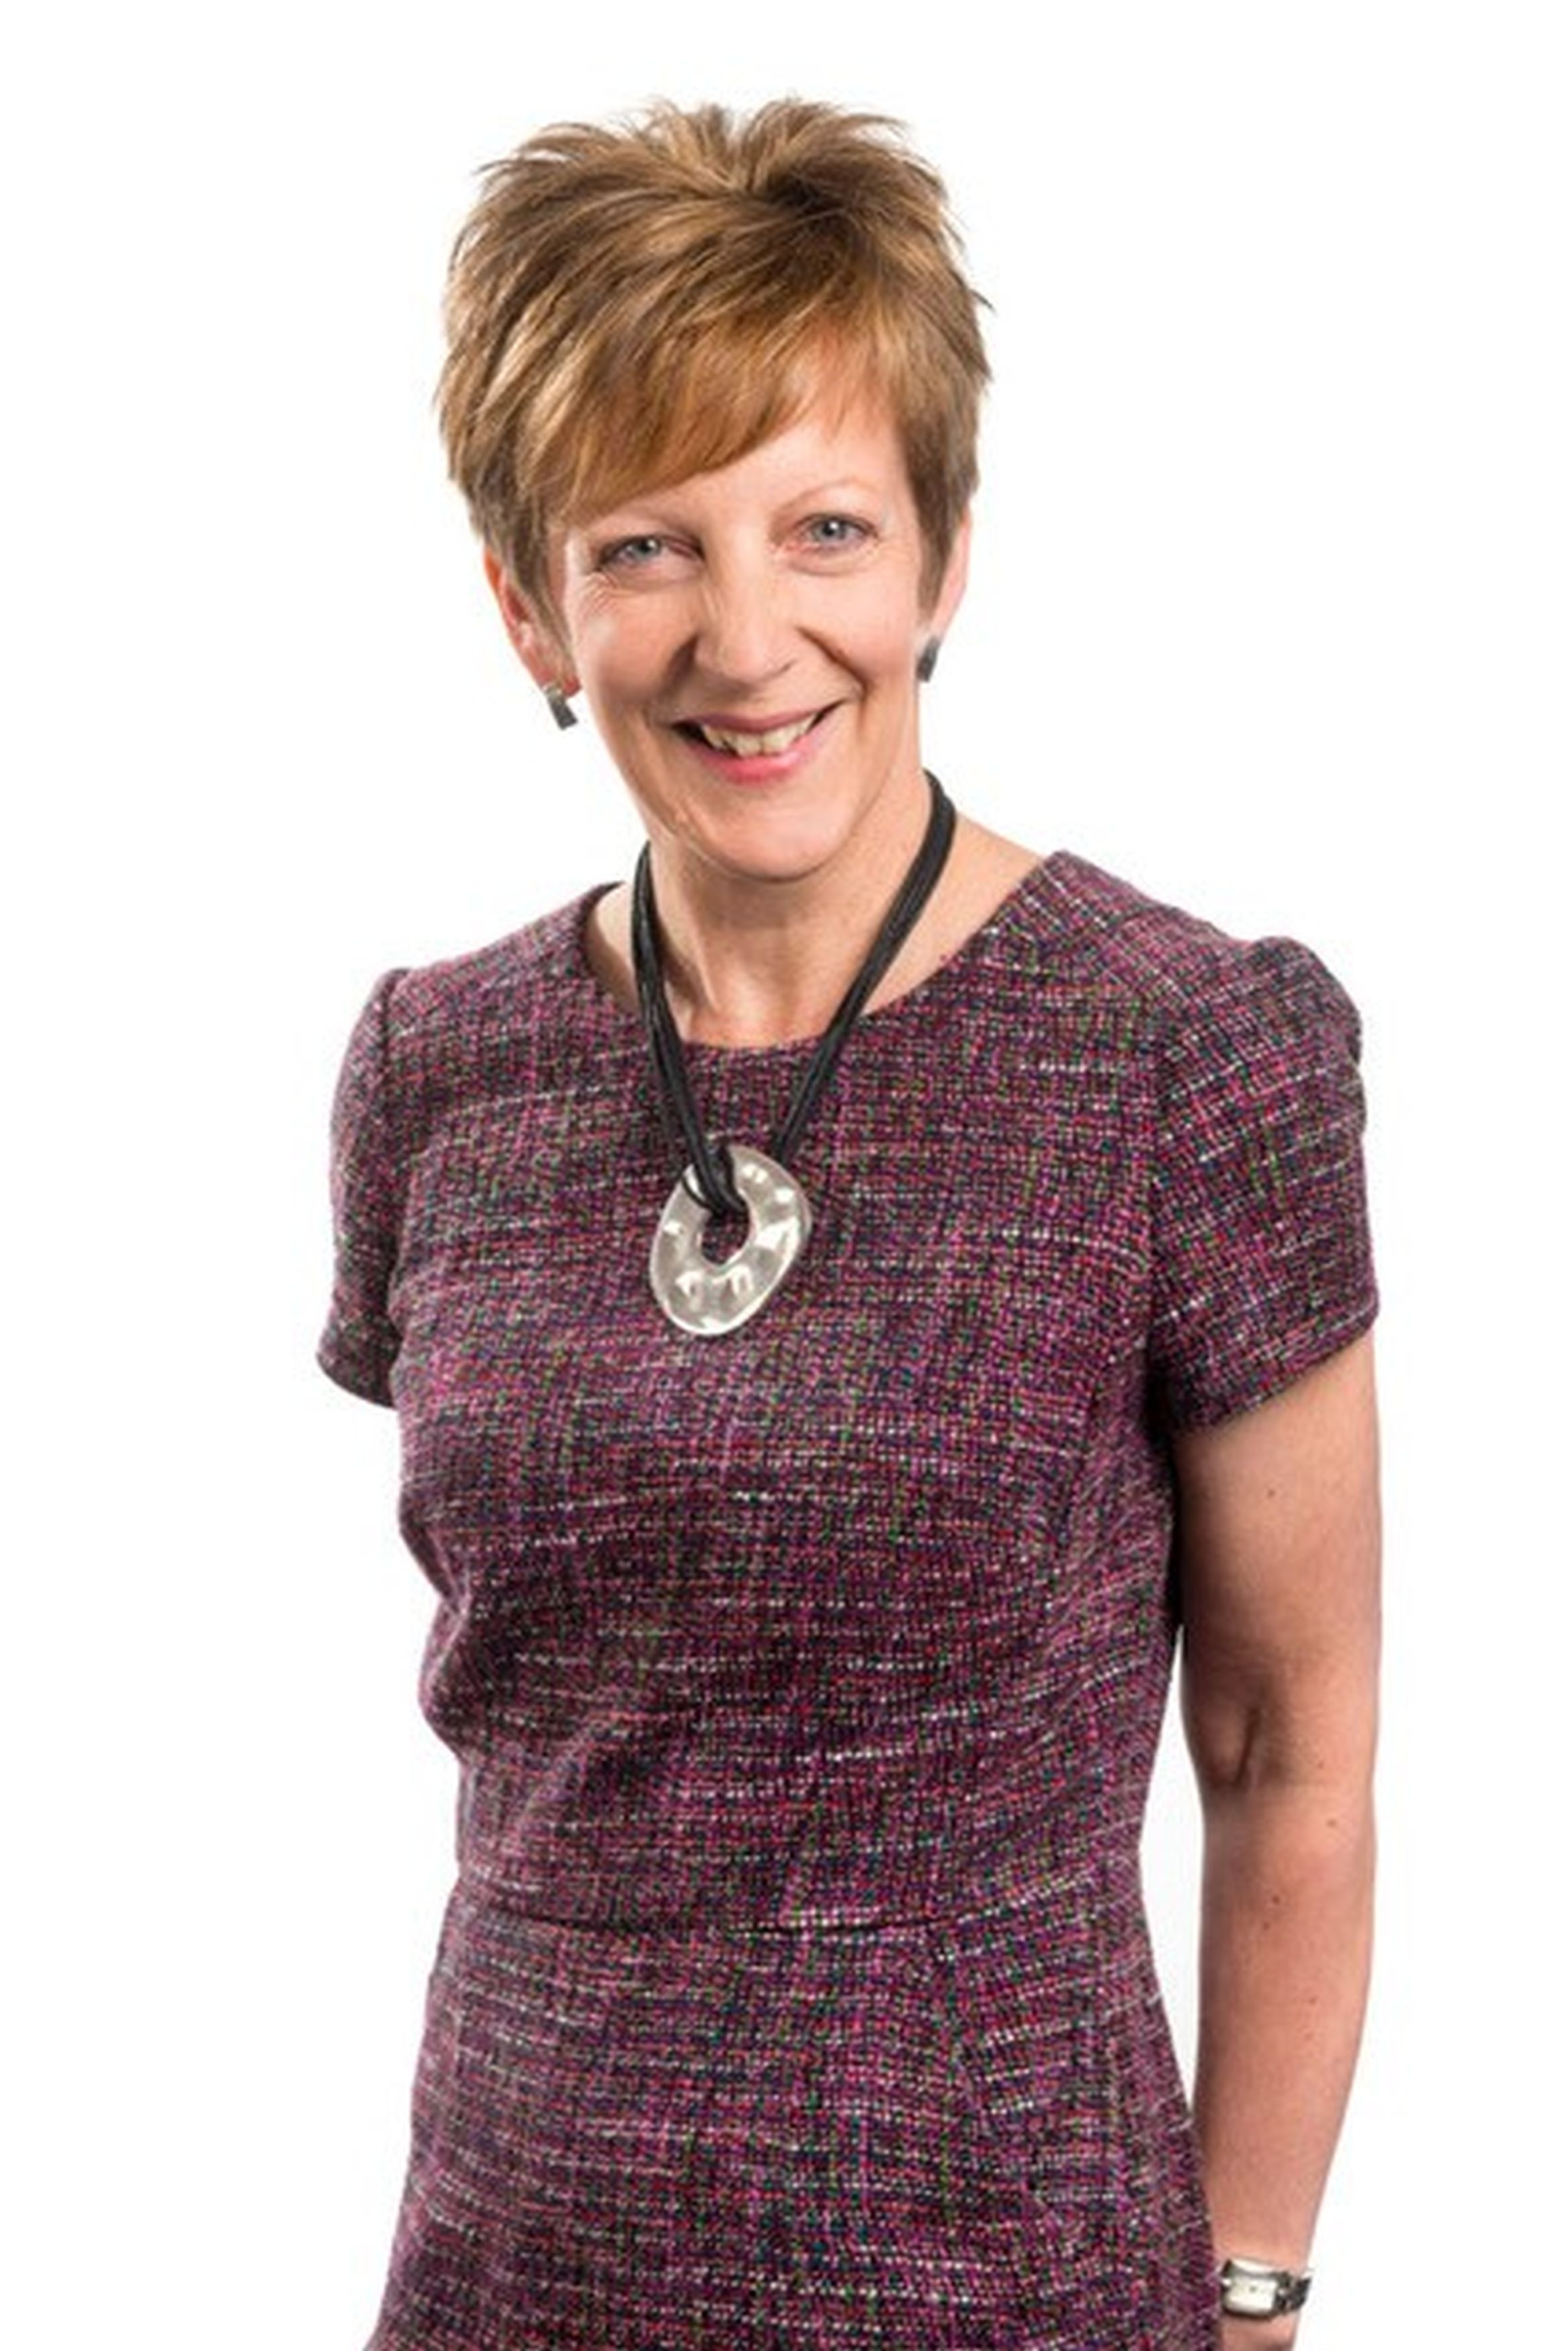 DR GILL HART pooing good for mental health